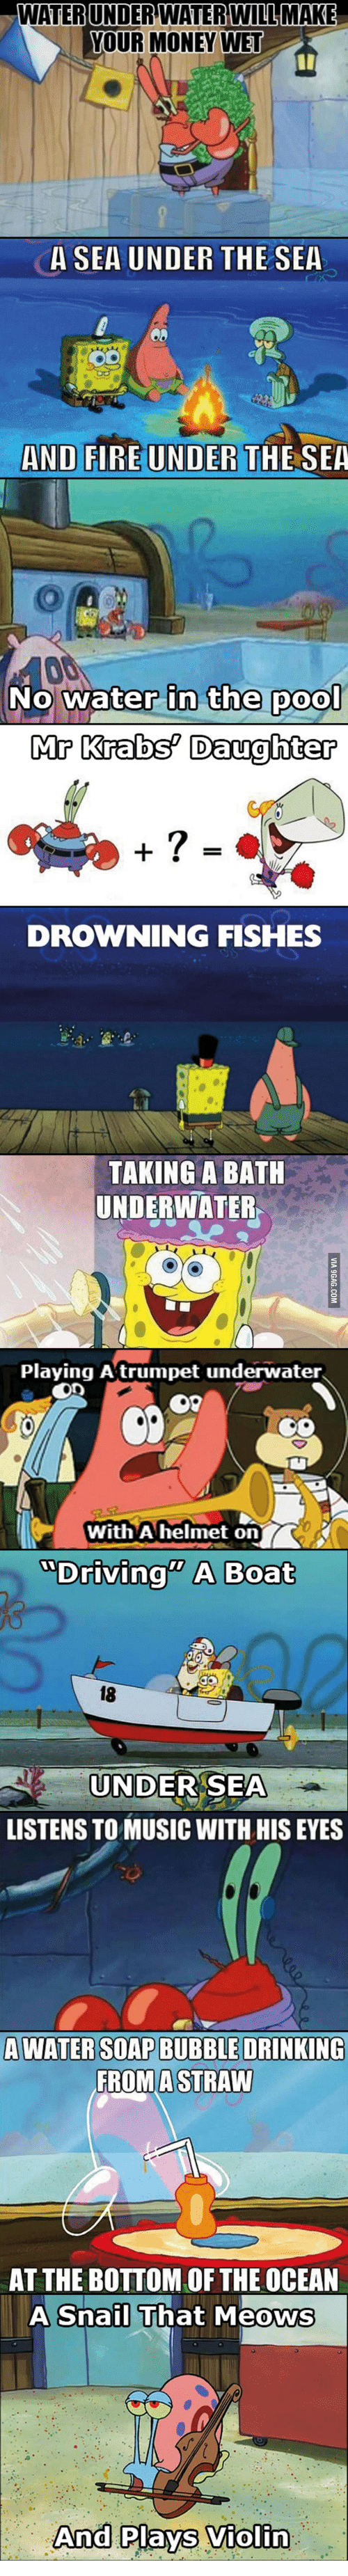 Mr. Krabs, Violin, and Snail: WATER UNDERWATER WILL MAKE  YOUR MONEY WET  A SEA UNDER THE SEA  AND FIRE UNDER  THE SEA  No water in the poo  Mr Krabs Daughter  DROWNING FISHES  TAKING A BATH  UNDERWATER  Playing A trumpet underwater.  With A helmet on  Driving A Boat  LISTENS TO MUSIC WITH HISEYES  A WATER SOAPBUBBLE DRINKING  FROM A STRAW  AT THE BOTTOM OF THE OCEAN  A Snail That Meows  And Plays Violin